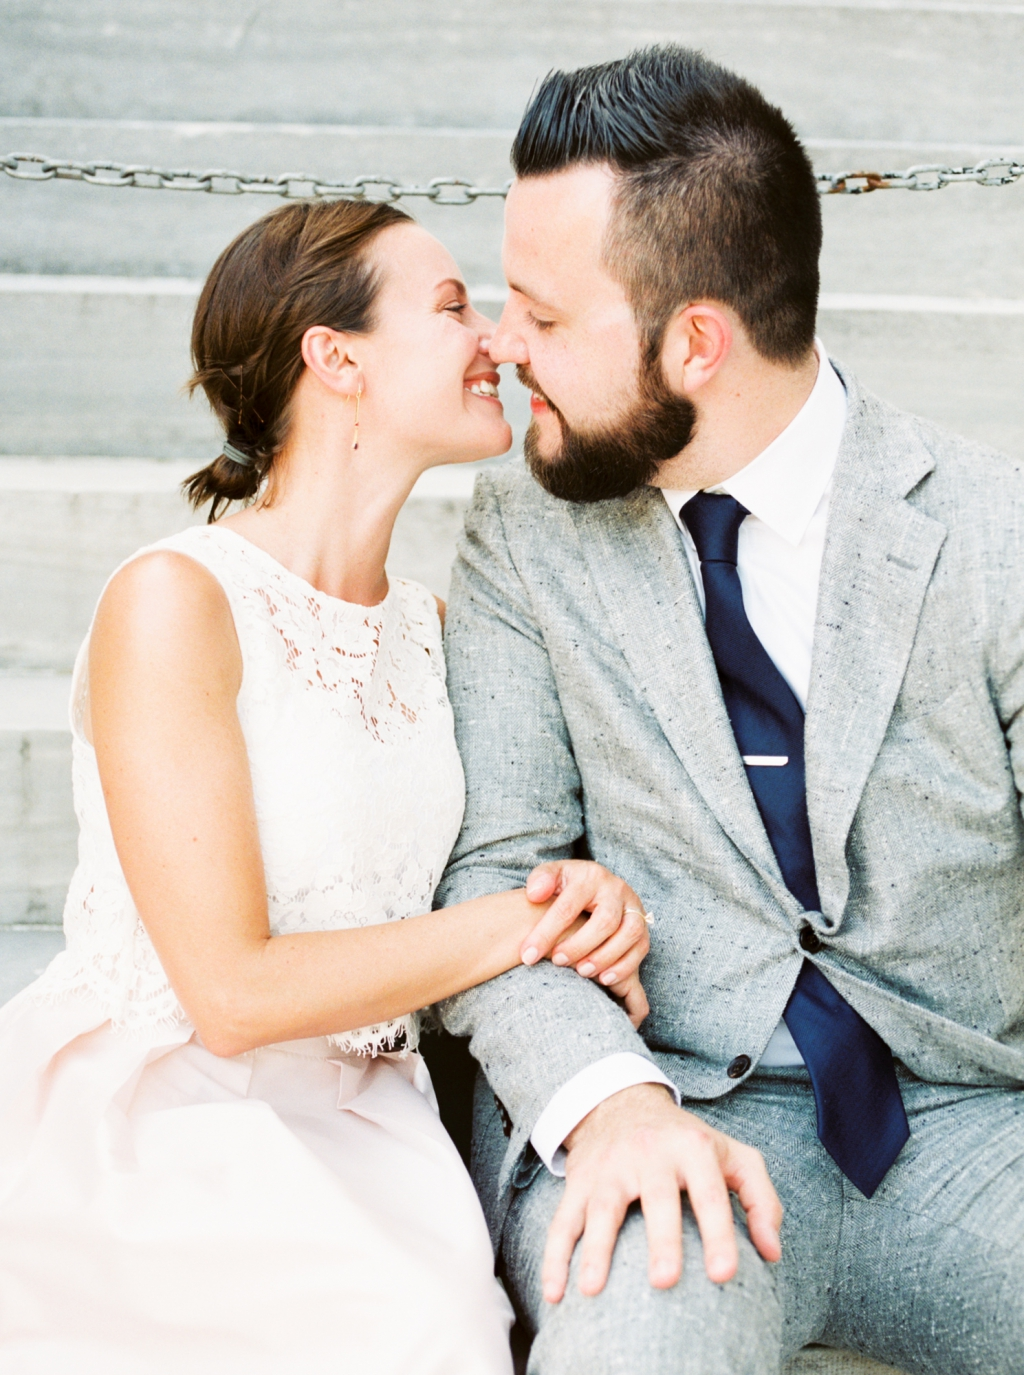 haley-richter-photography-intimate-summer-wedding-palomar-hotel-old-city-philadelphia-181